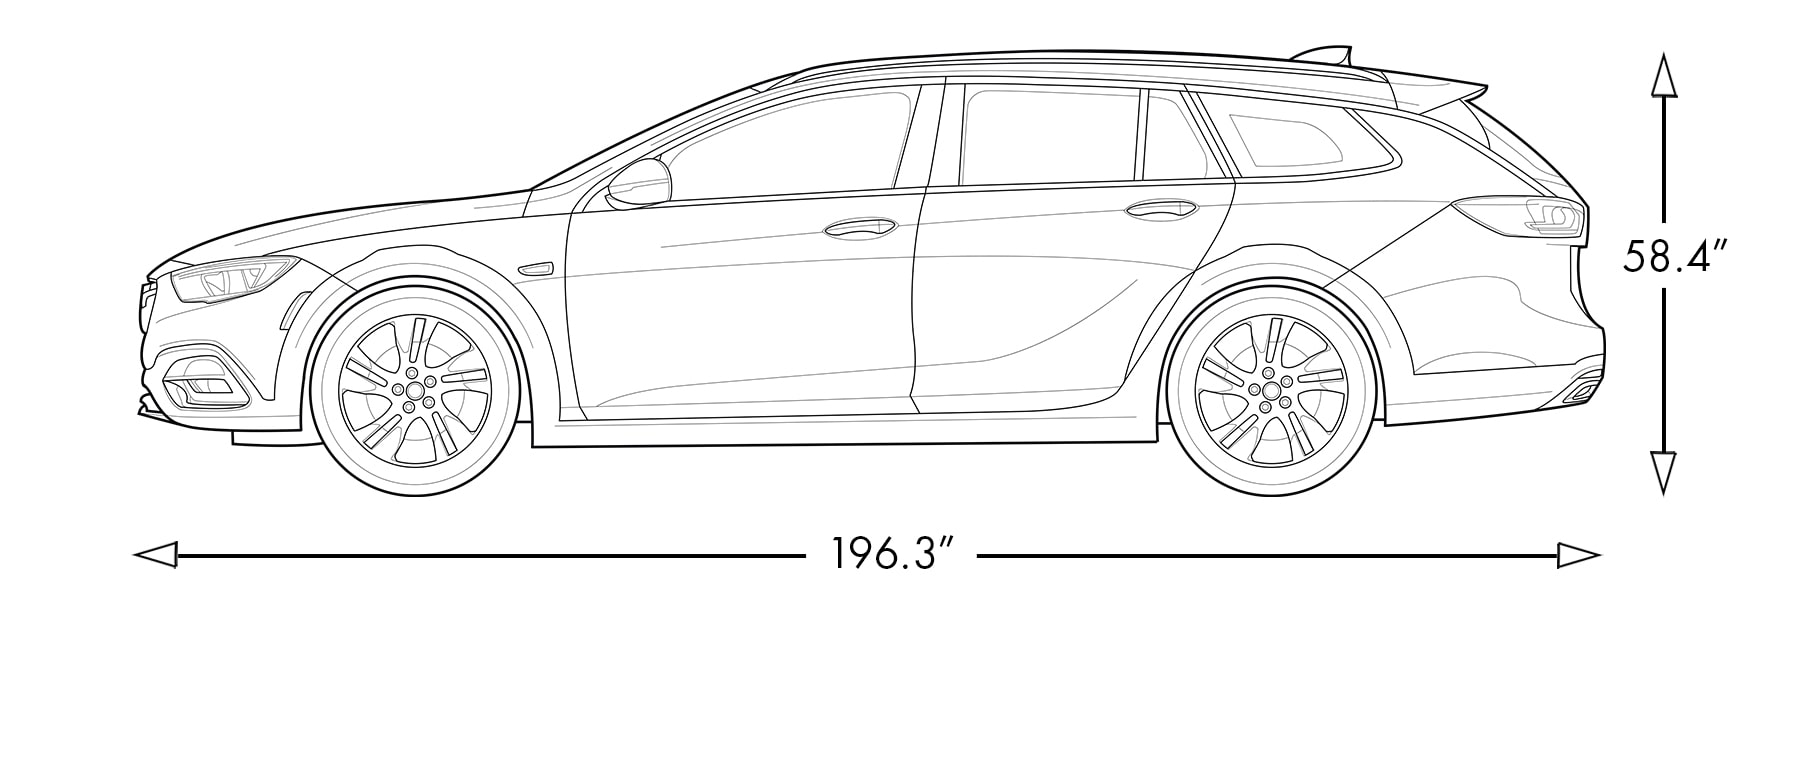 2020 Buick Regal TourX Luxury Wagon Specs Diagram